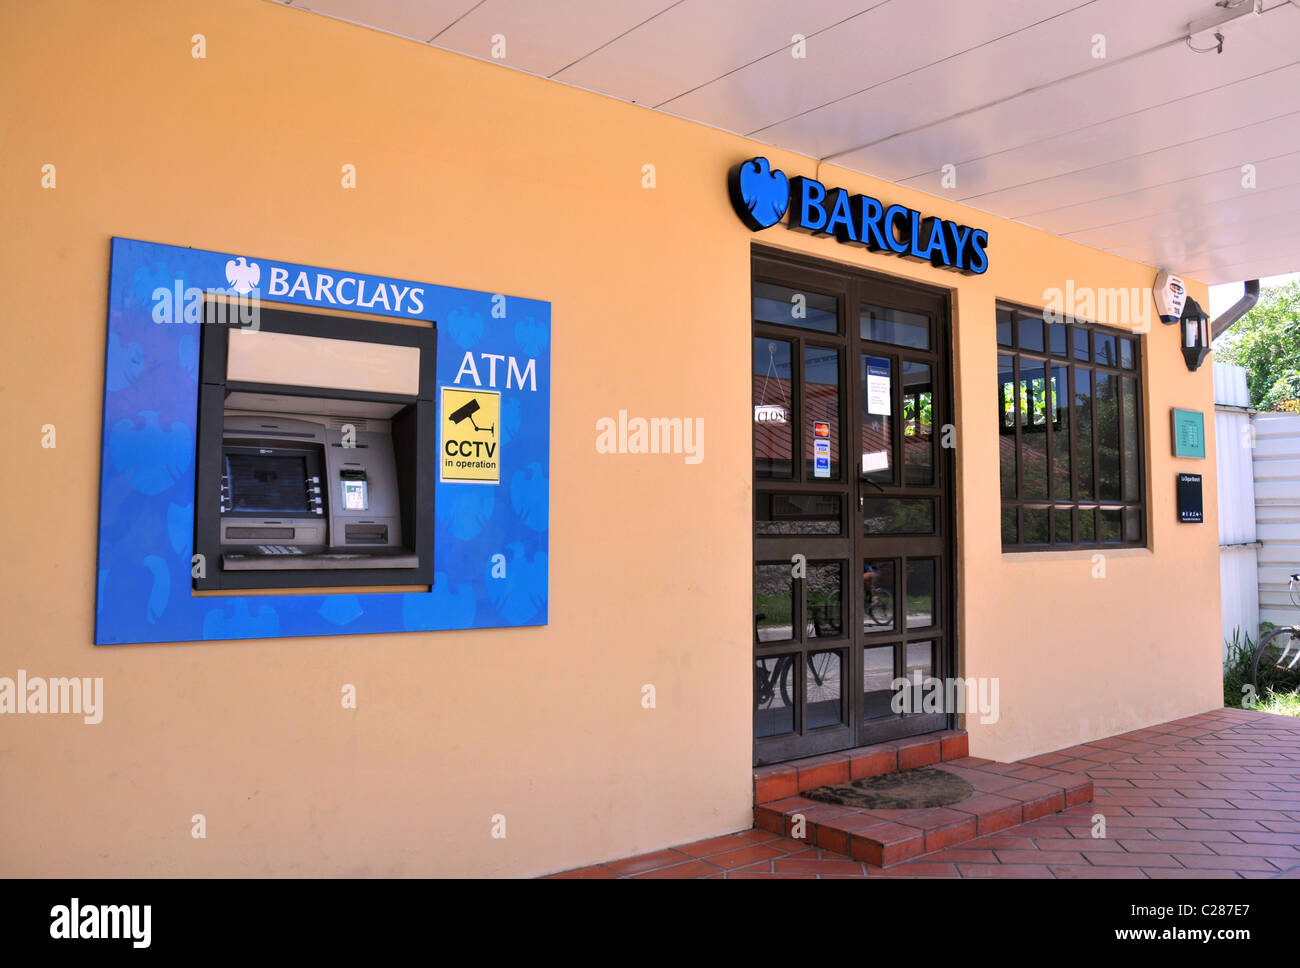 Barclays Bank branch and ATM. La Digue Island Seychelles. - Stock Image